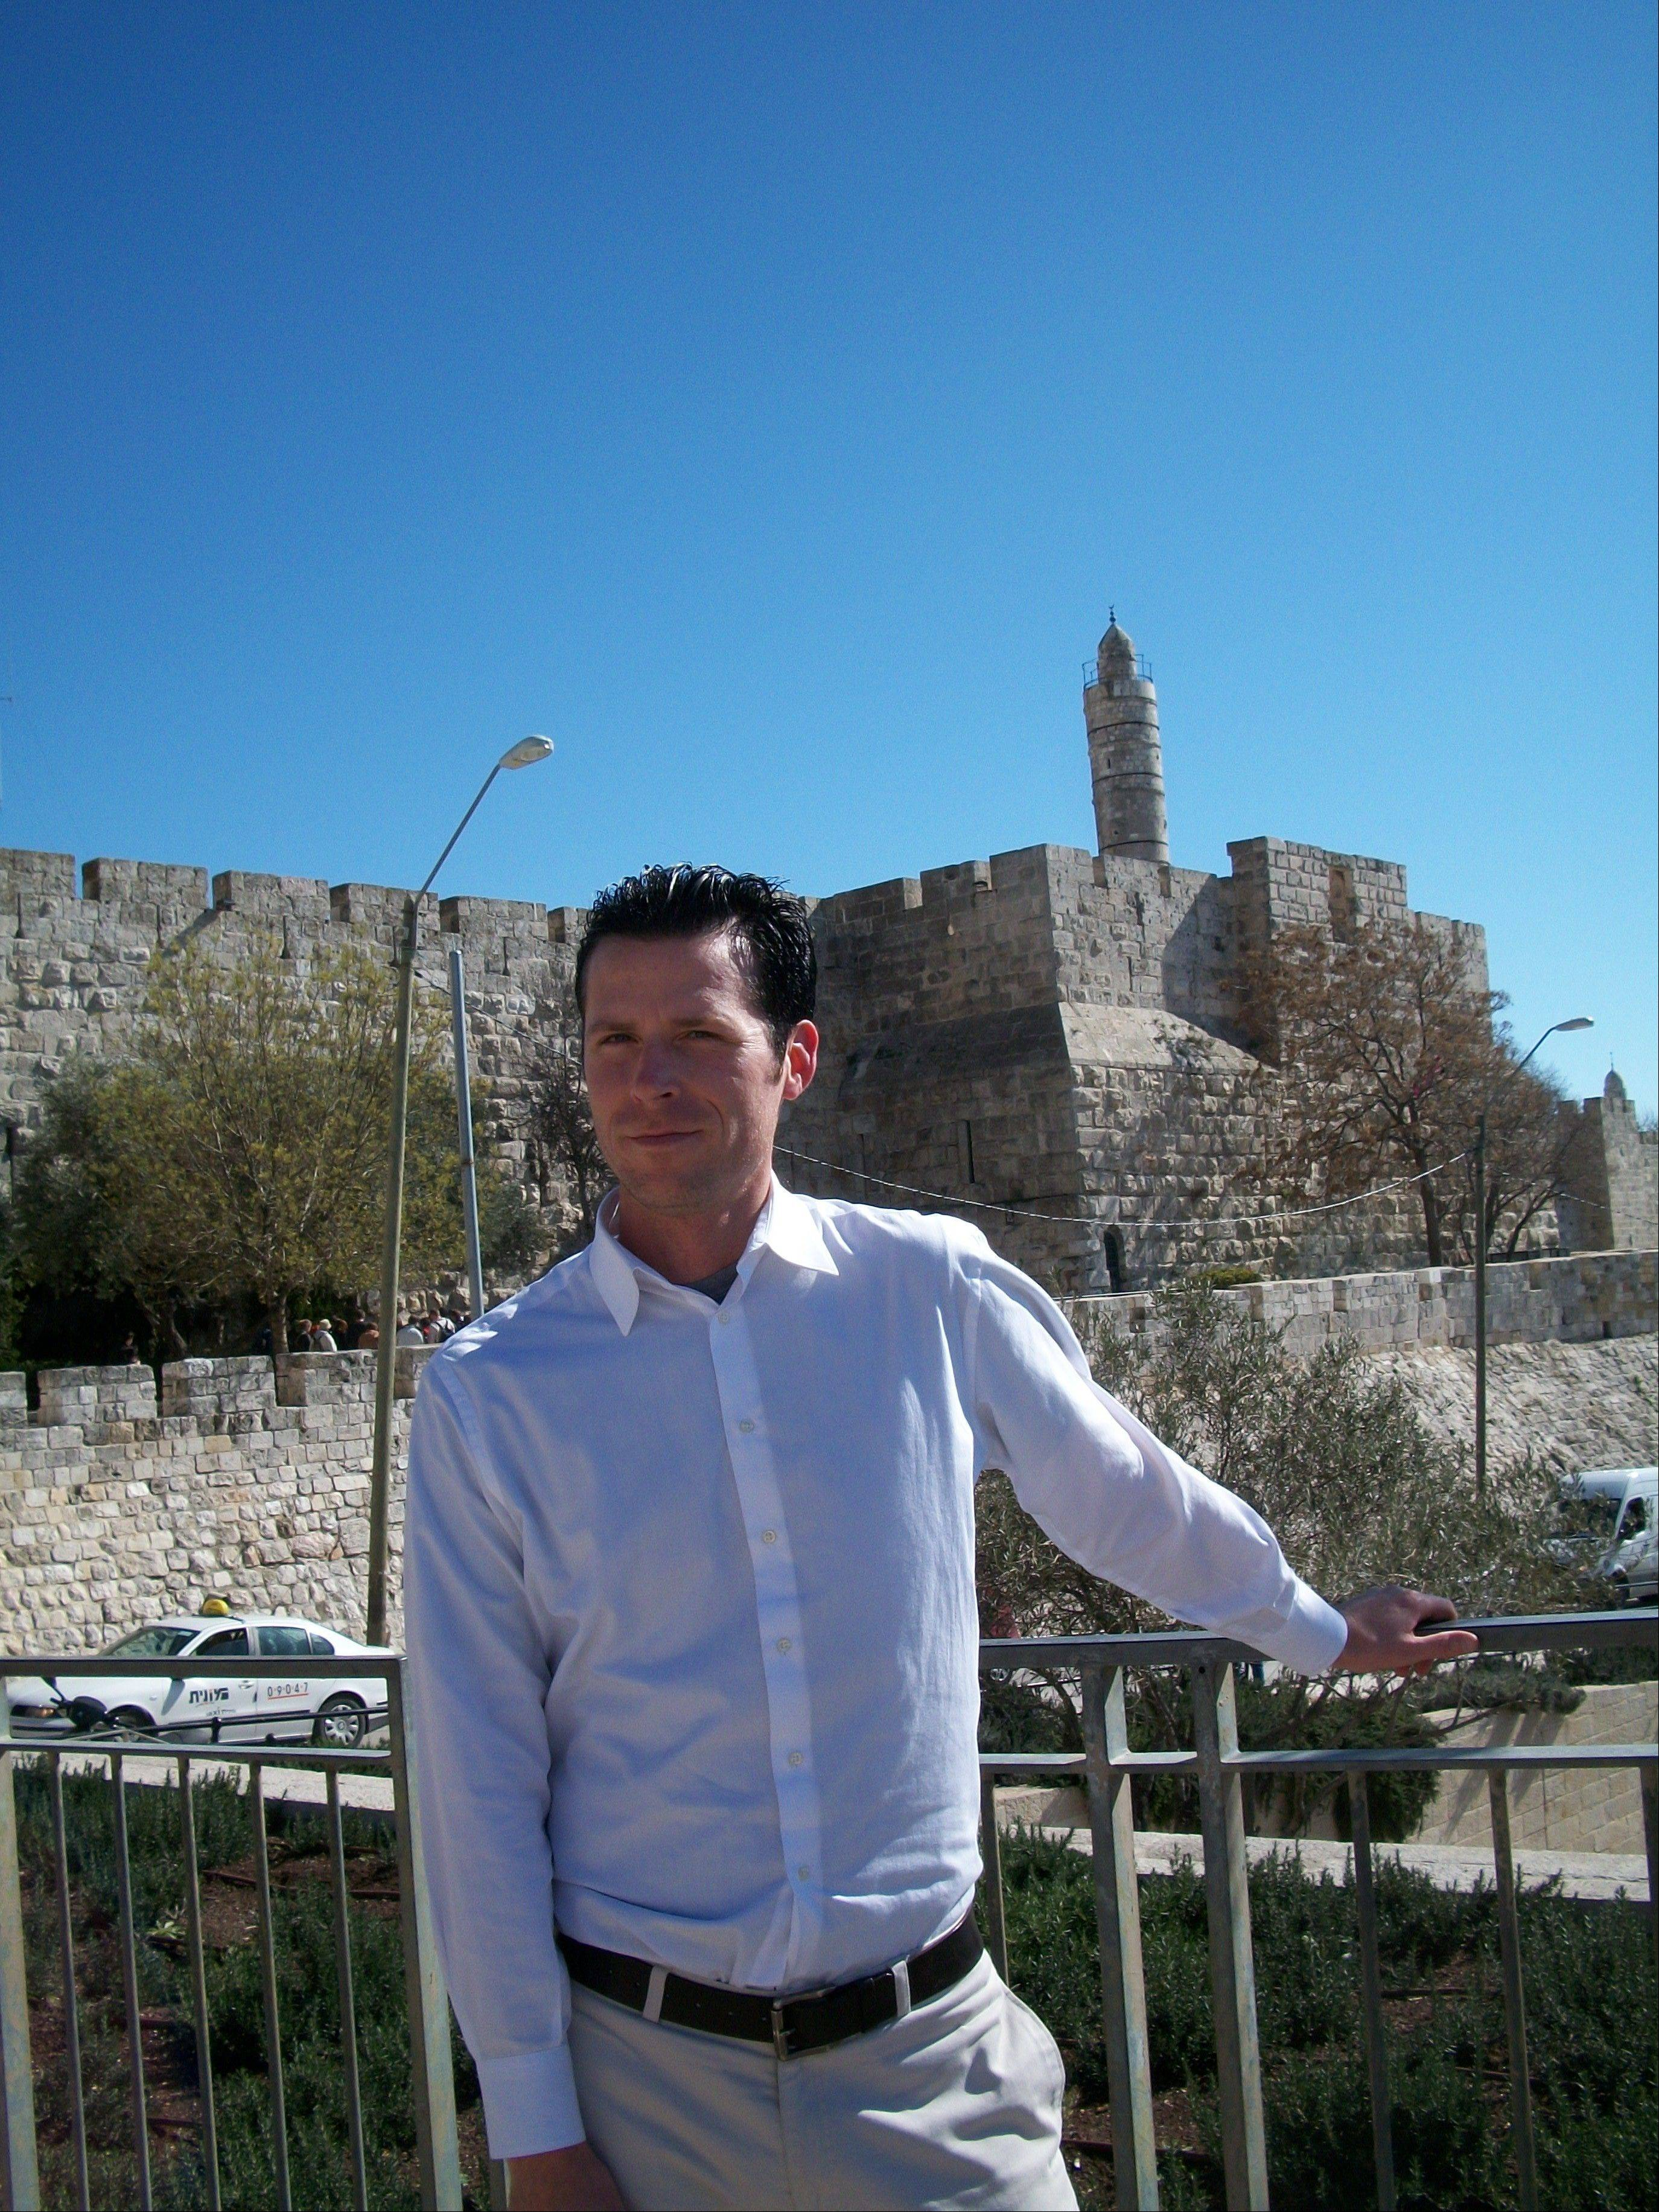 While attending graduate school in Israel, Lombard native Tom Meyer visited many biblical locations, such as this spot in Jerusalem.